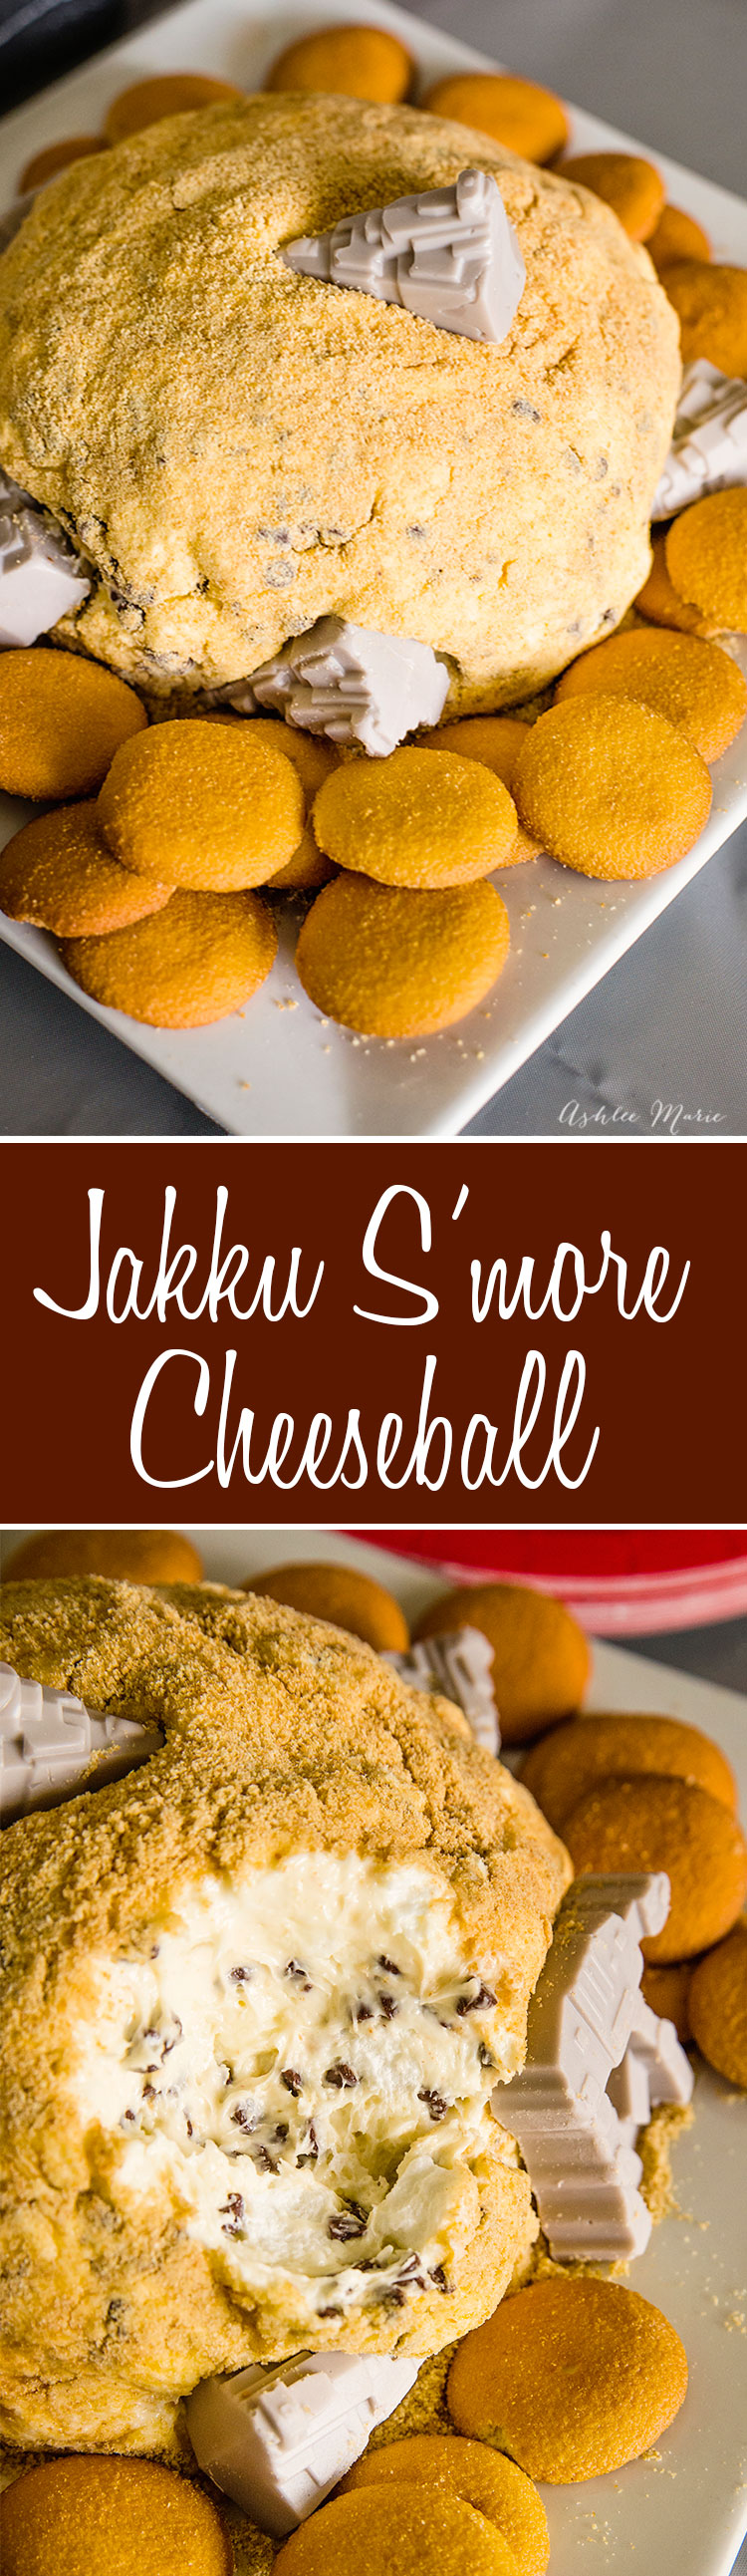 this easy to make and sweet s'more cheese ball represents the planet Jakku from The force awakens